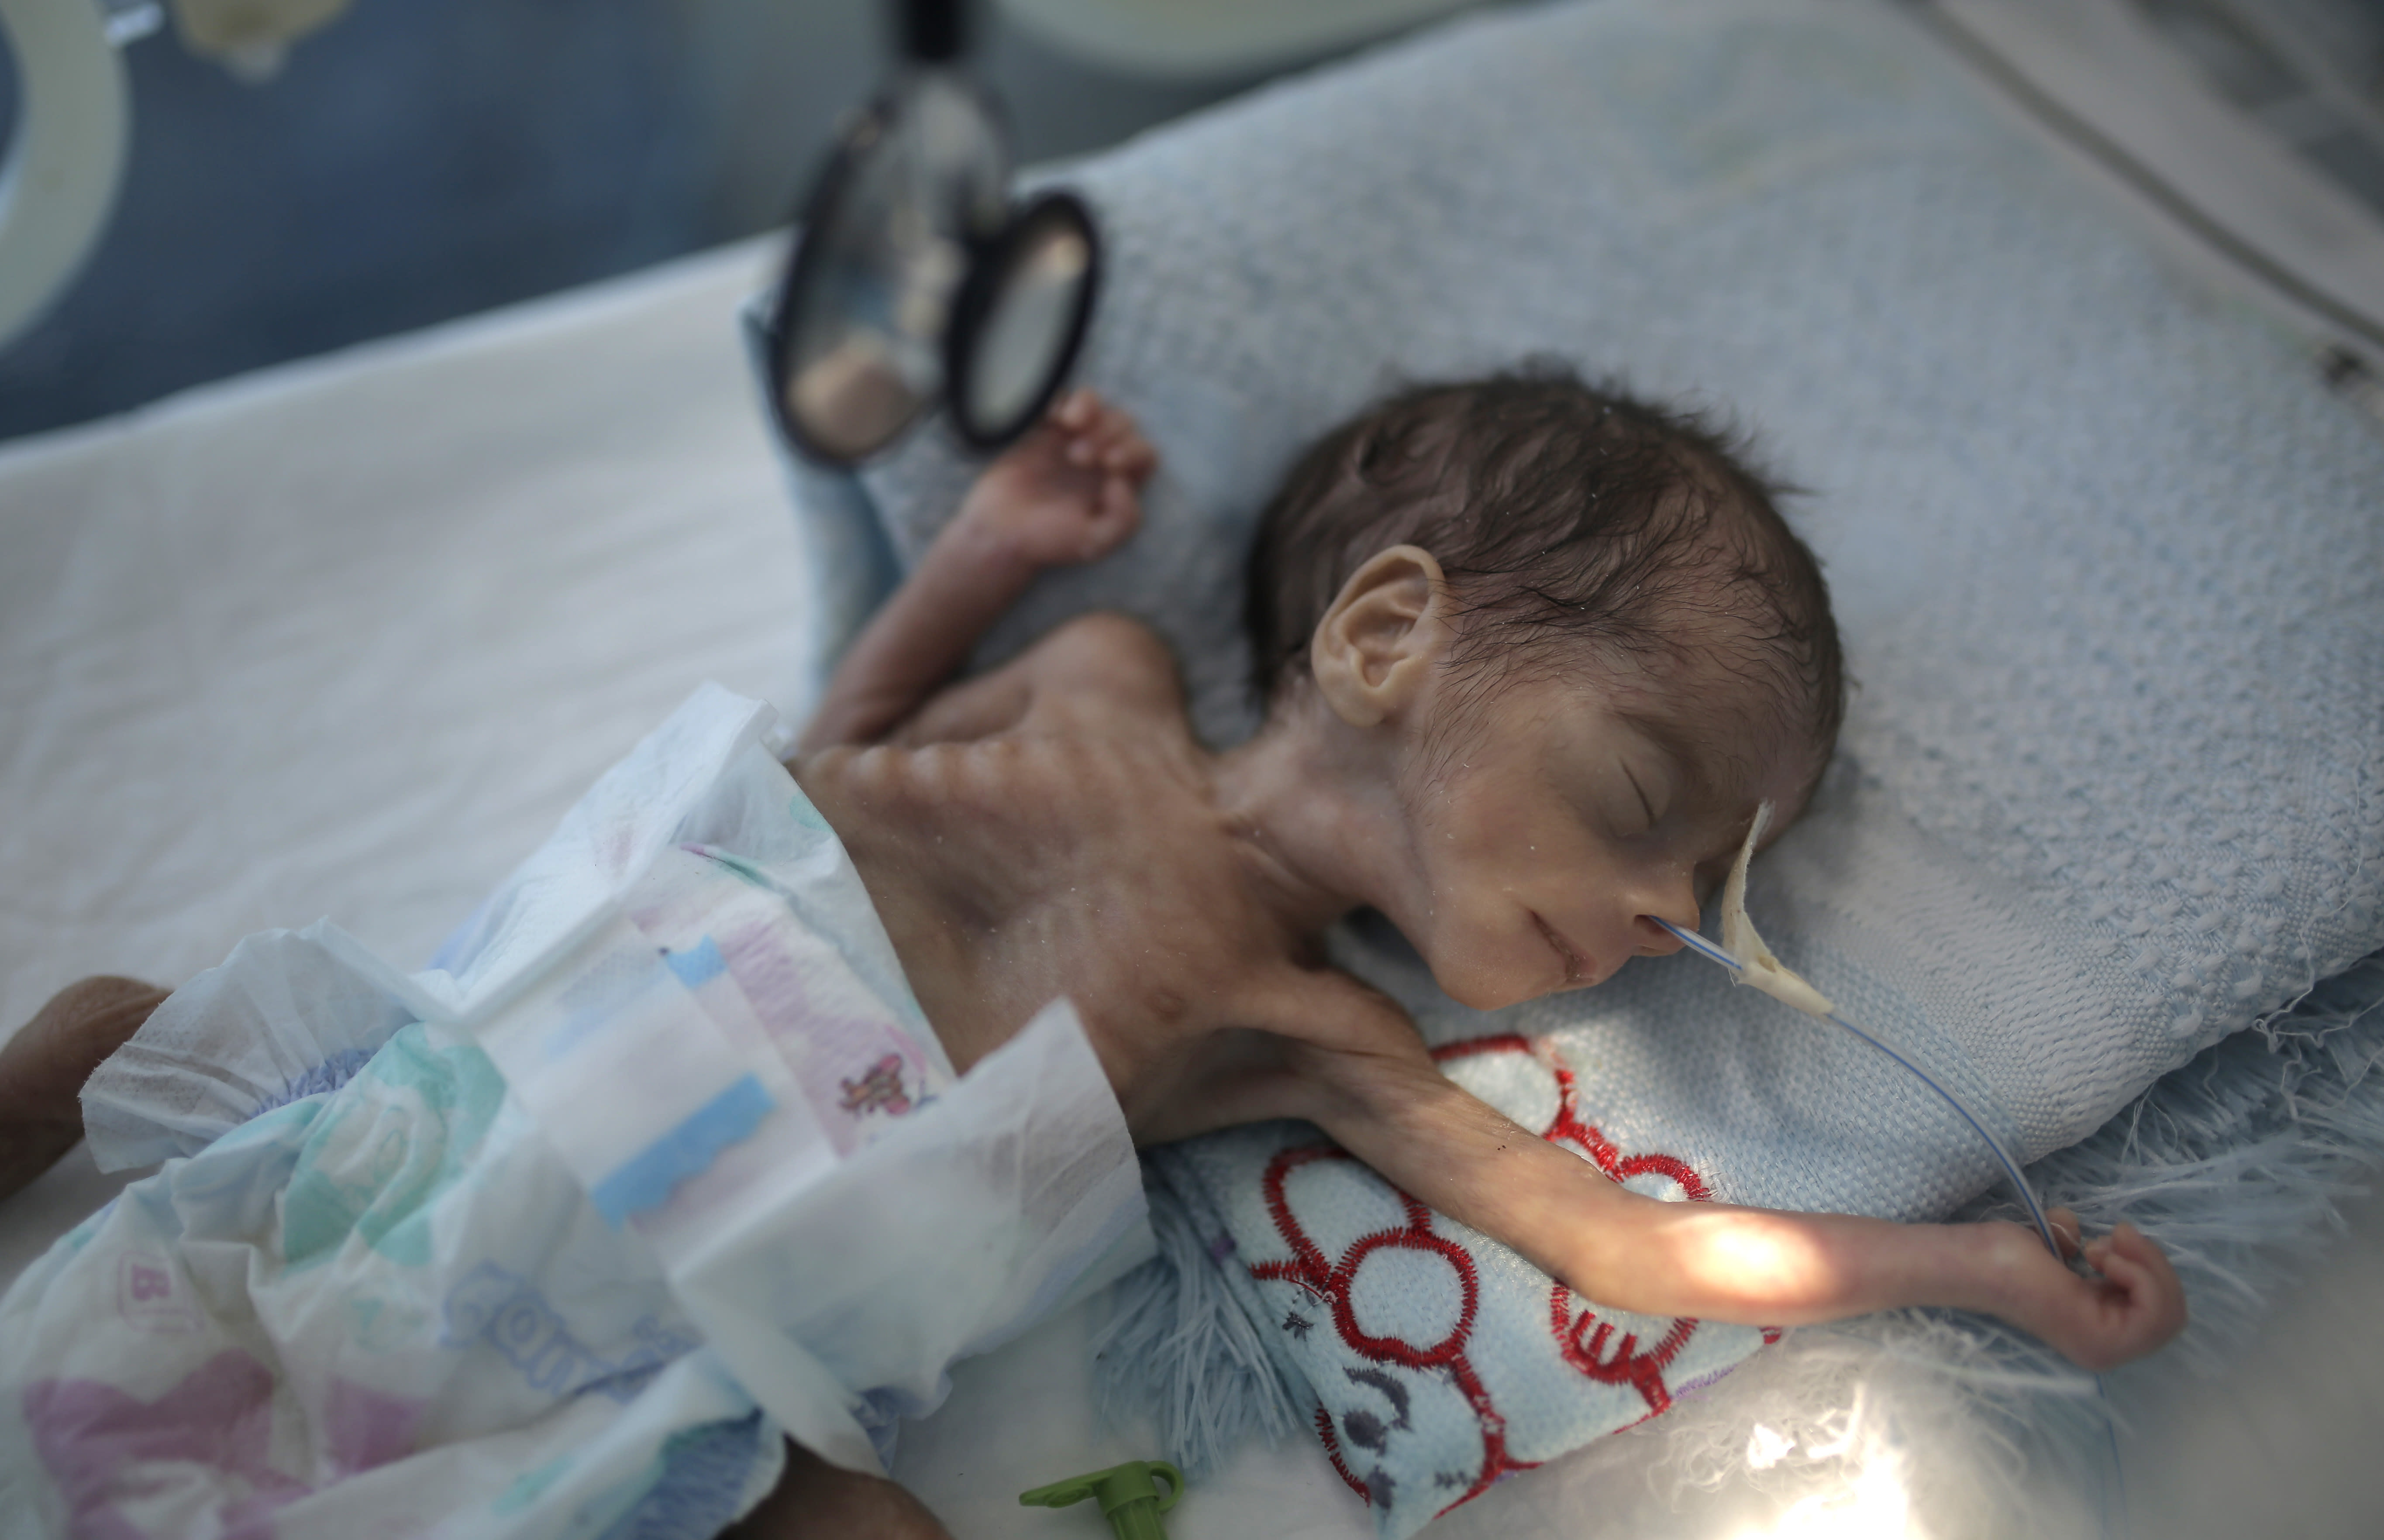 """FILE - In this Nov. 23, 2019 file photo, a malnourished newborn baby lies in an incubator at Al-Sabeen hospital in Sanaa, Yemen. The U.N. children's agency says that millions of Yemeni children could be pushed to """"the brink of starvation"""" as the coronavirus pandemic sweeps across the war-torn Arab country amid a huge drop in humanitarian aid funding. UNICEF on Friday, June 26, 2020 released a new report, """"Yemen five years on: Children, conflict and COVID-19."""" (AP Photo/Hani Mohammed, File)"""